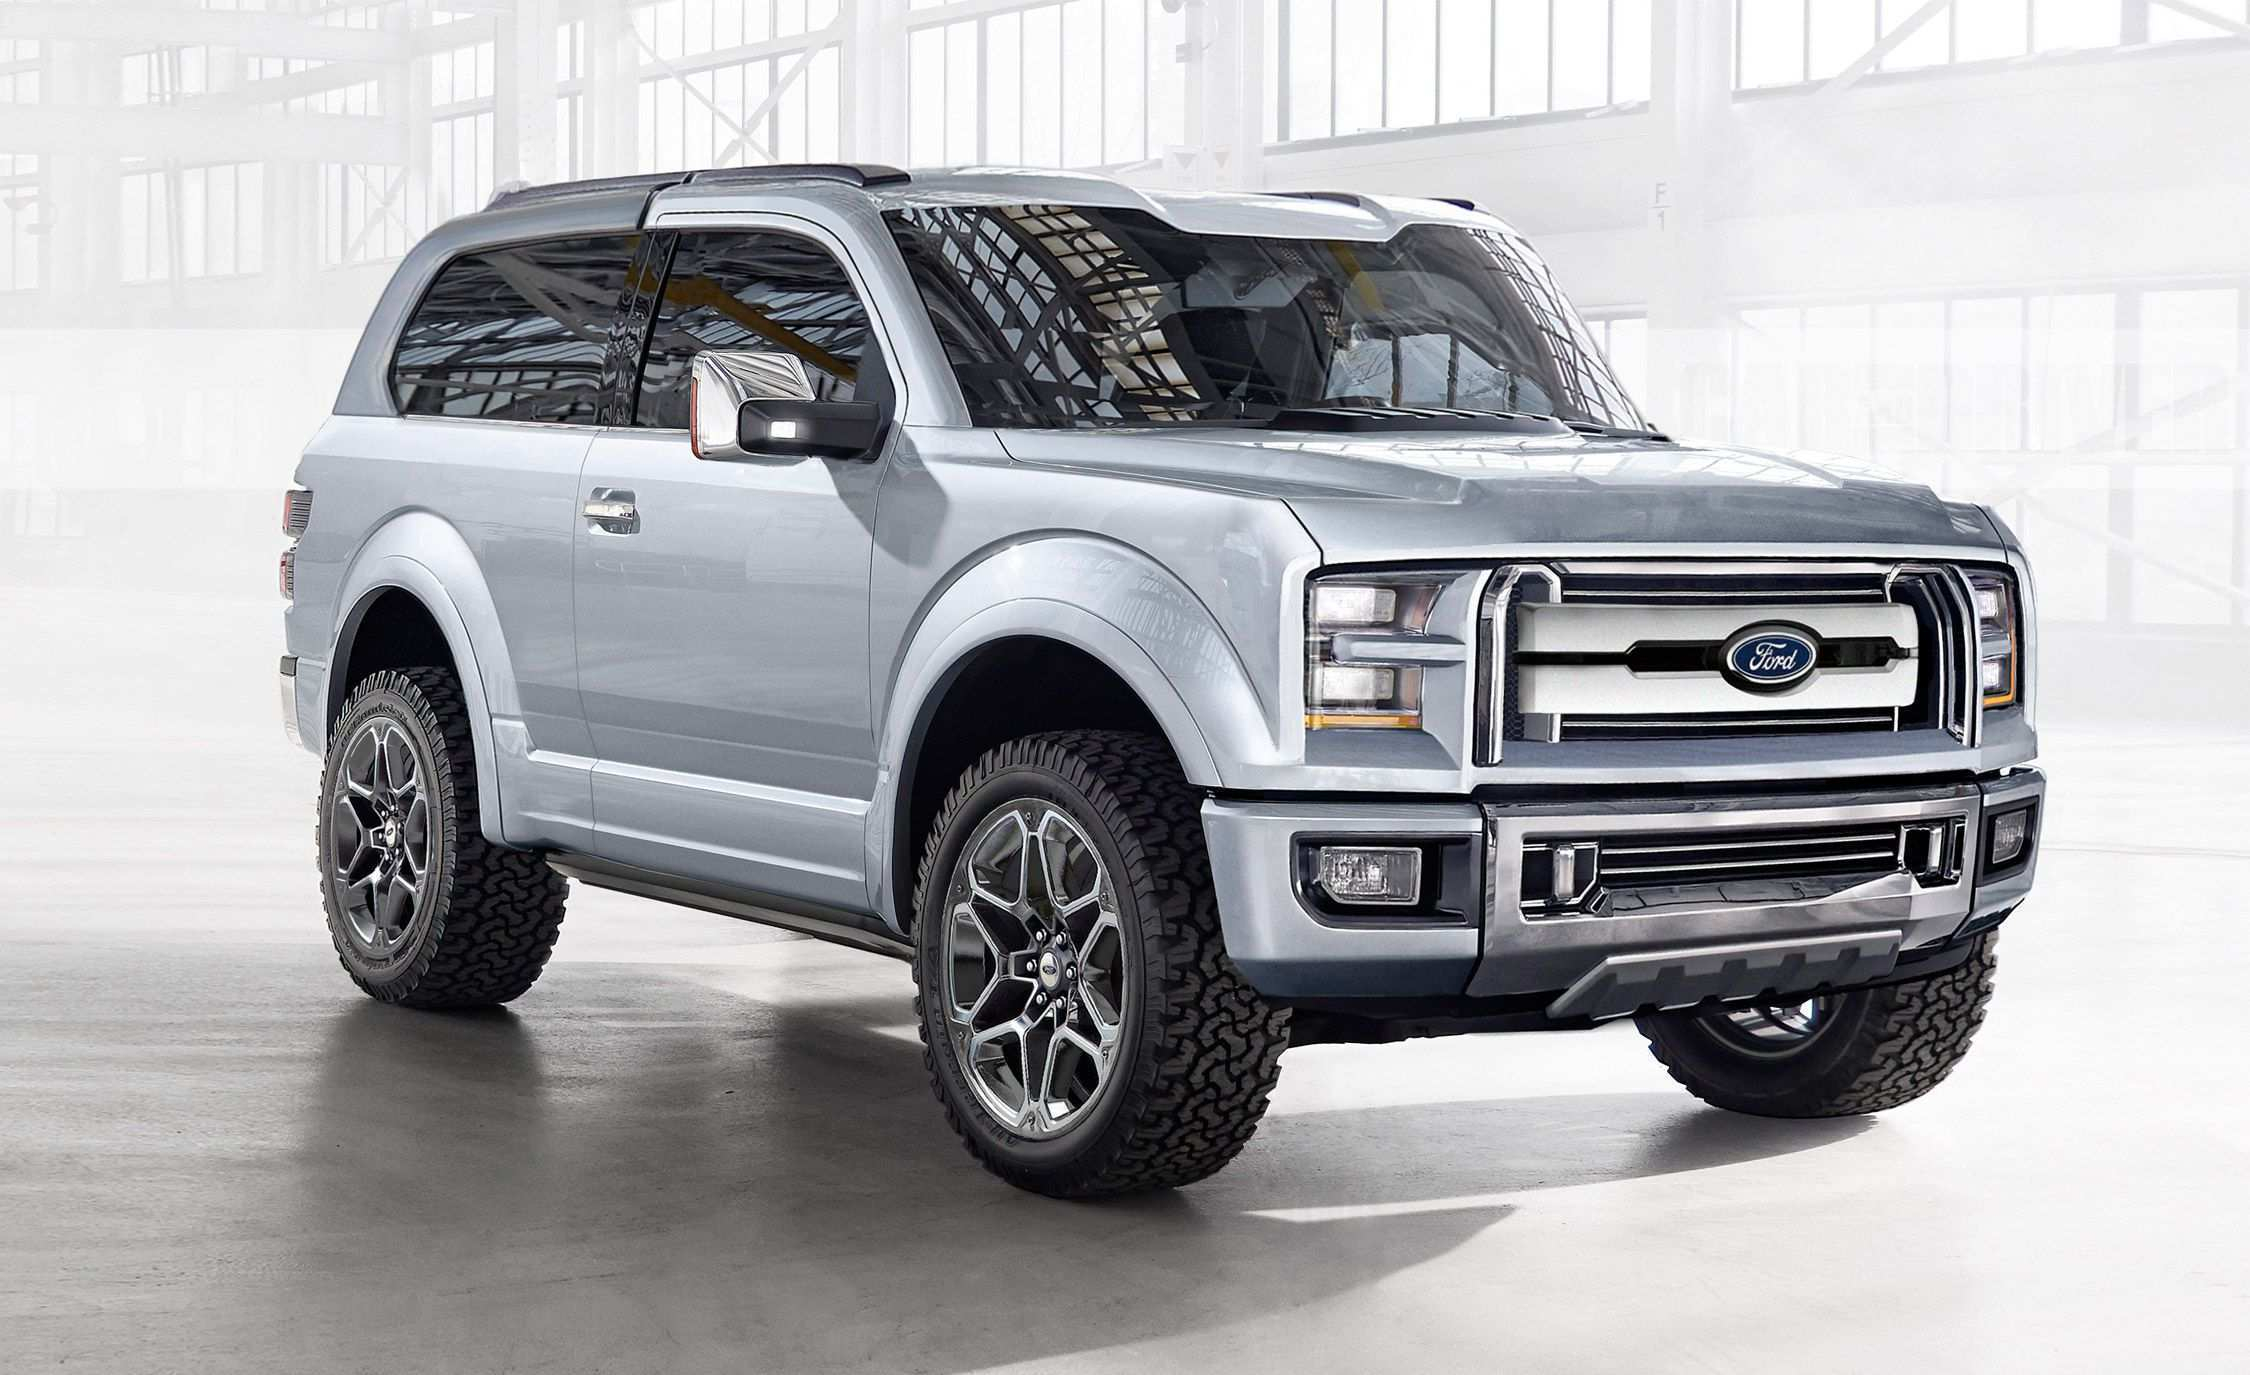 37 All New 2020 Ford Bronco Official Pictures New Review for 2020 Ford Bronco Official Pictures